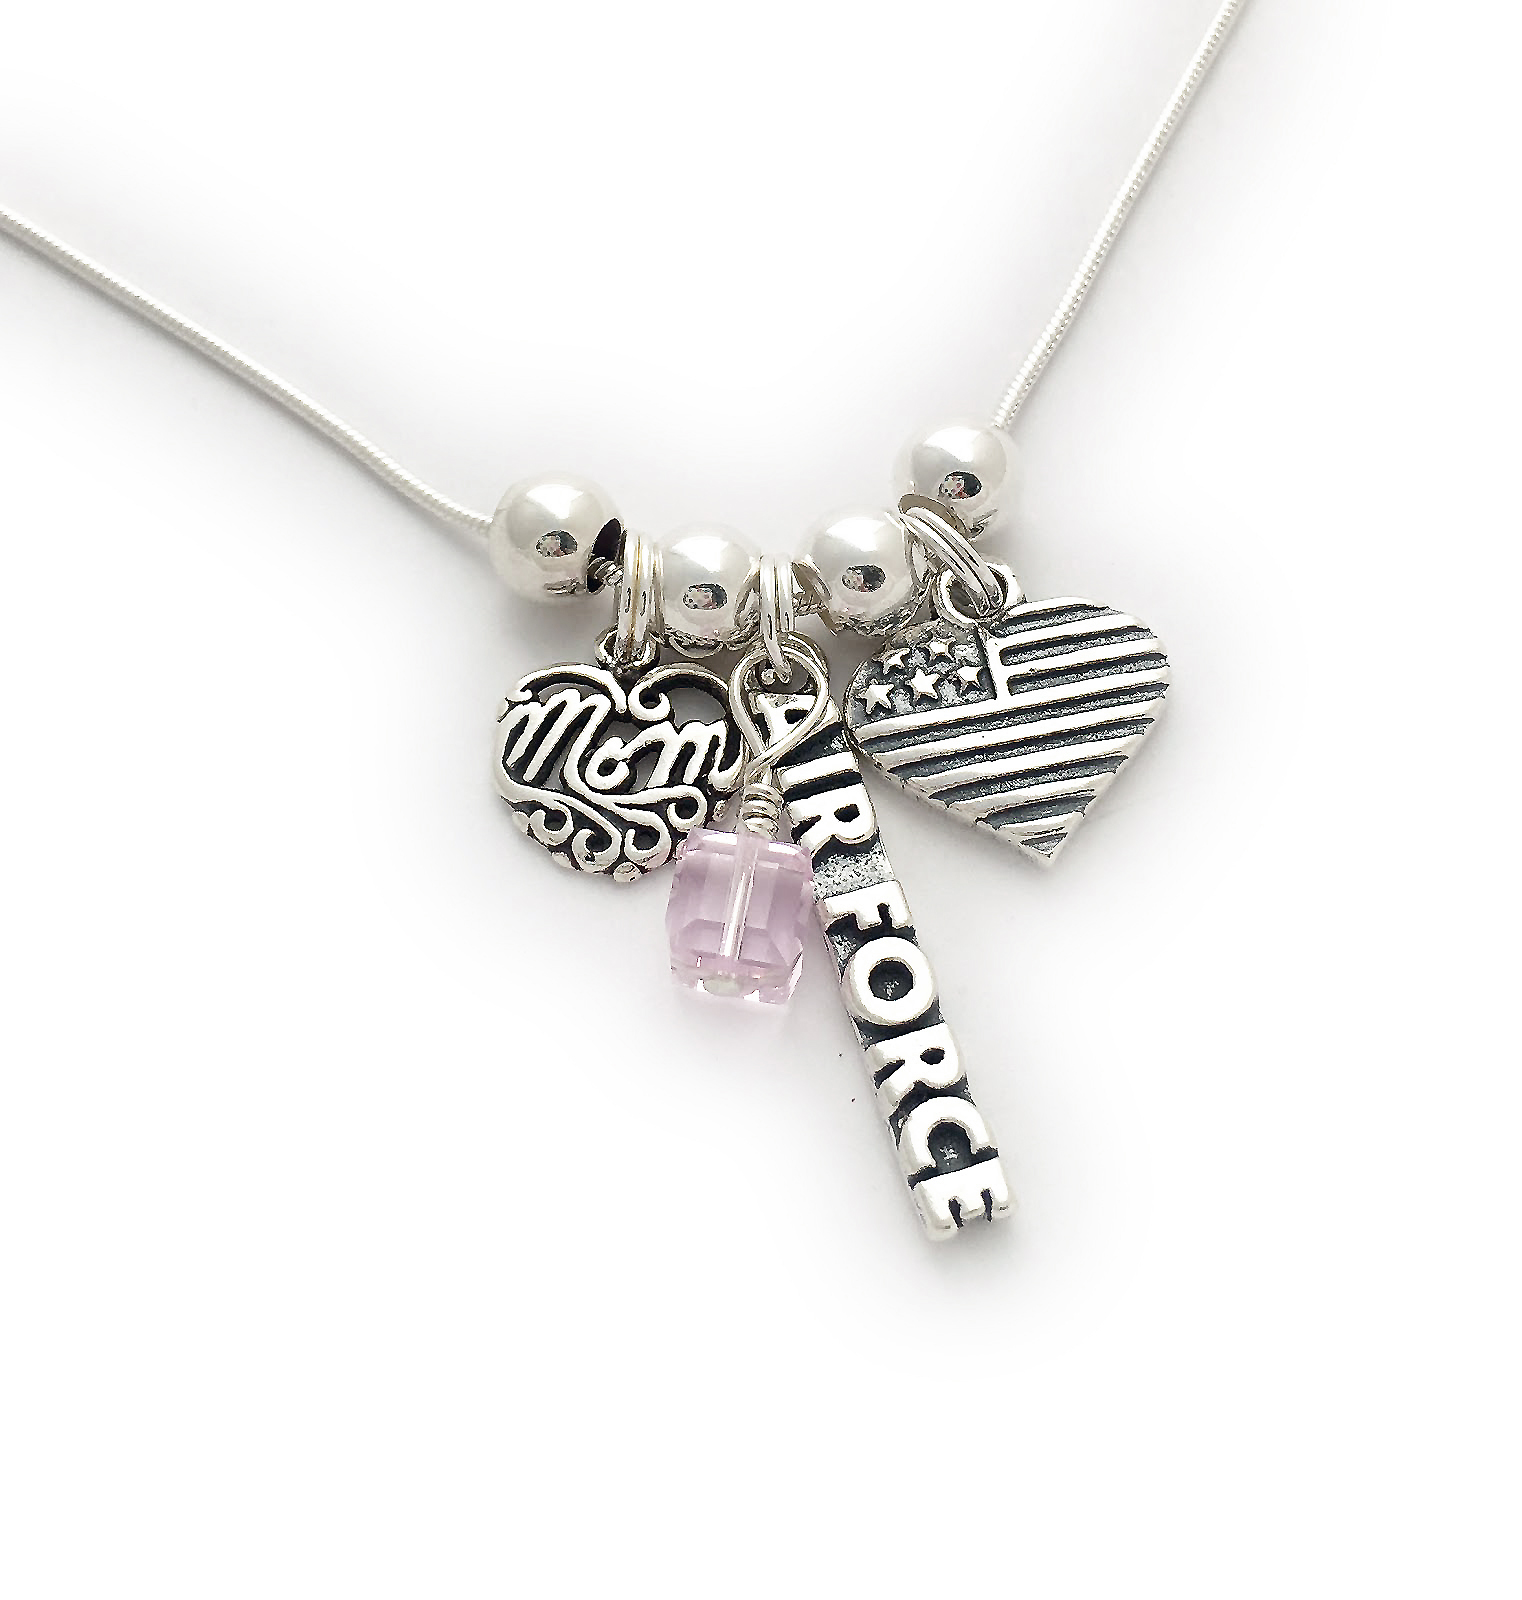 Item: JBL-USA-N8 Air Force Mom Charm Necklace shown with an add-on October Birthstone Charm.